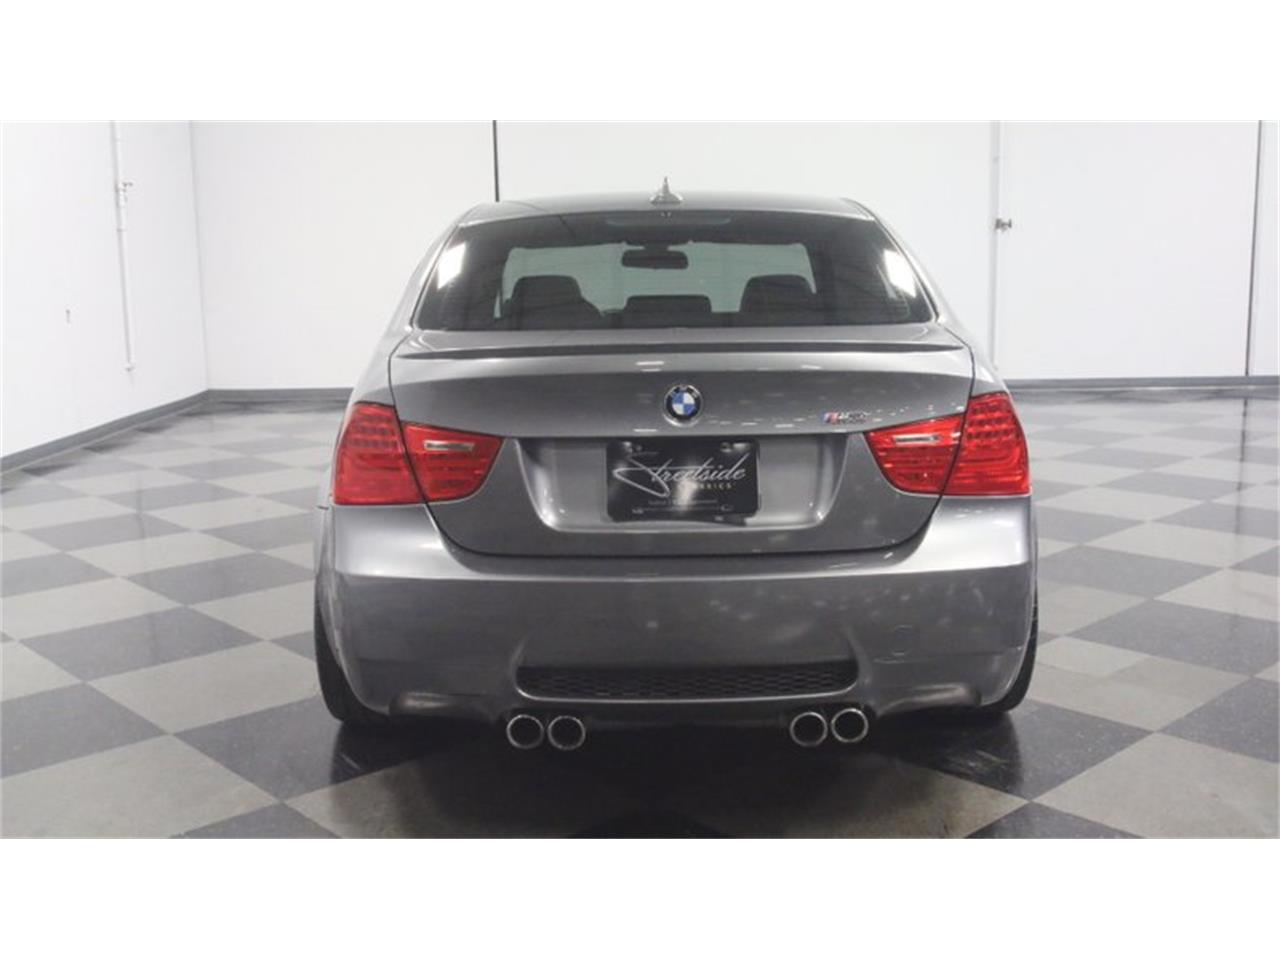 2010 BMW M3 for sale in Lithia Springs, GA – photo 11